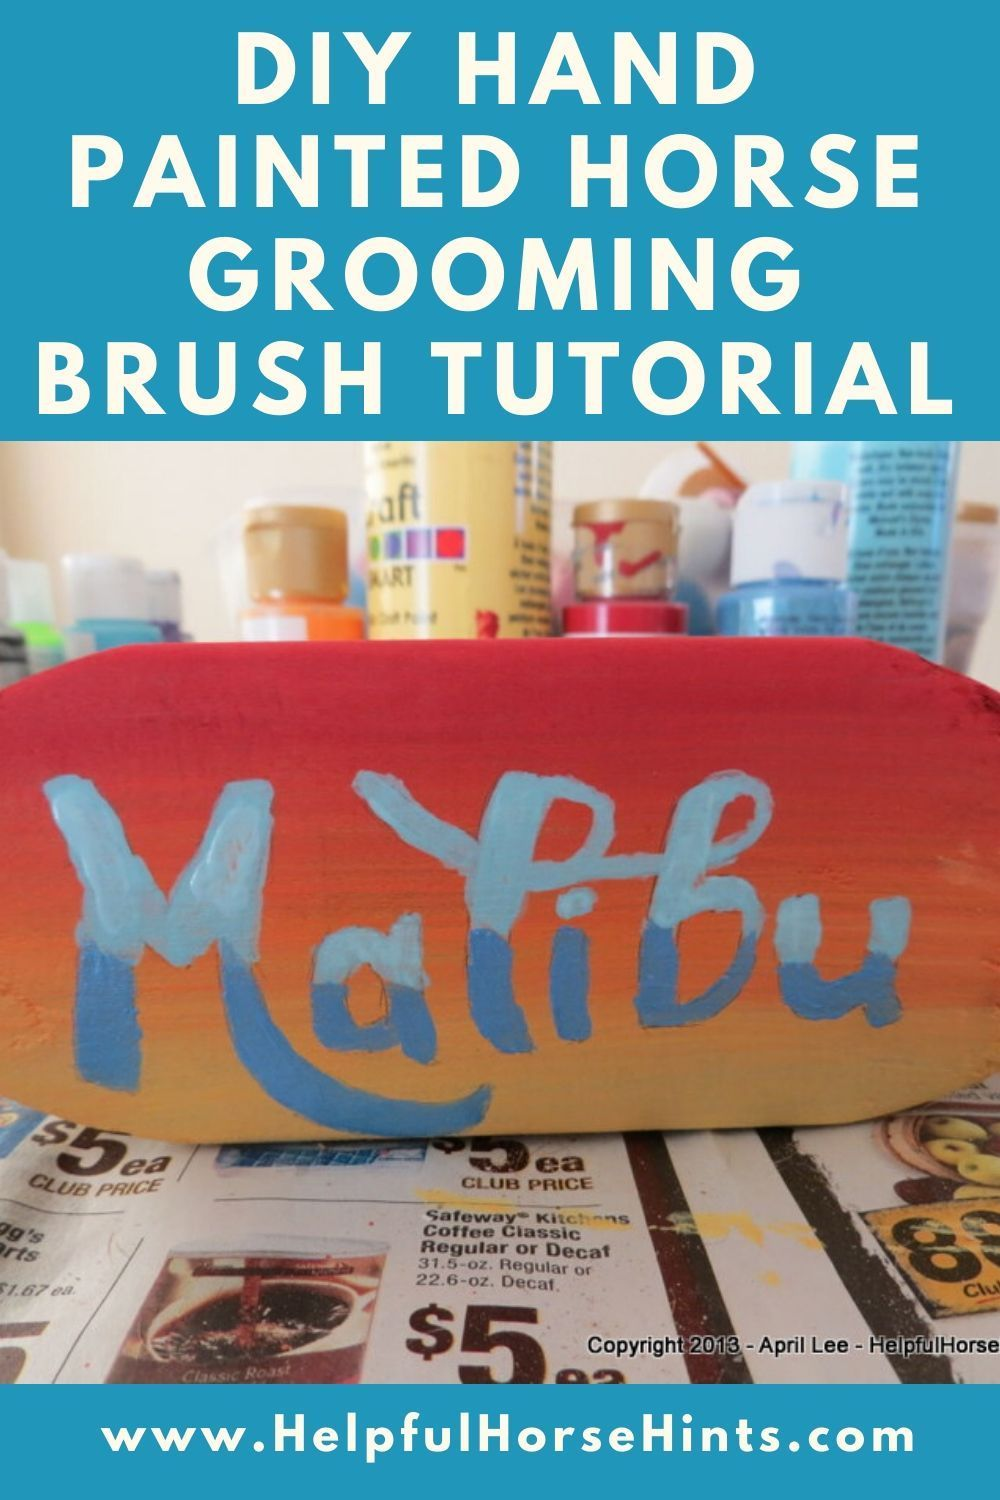 DIY Hand Painted Grooming Brush Tutorial